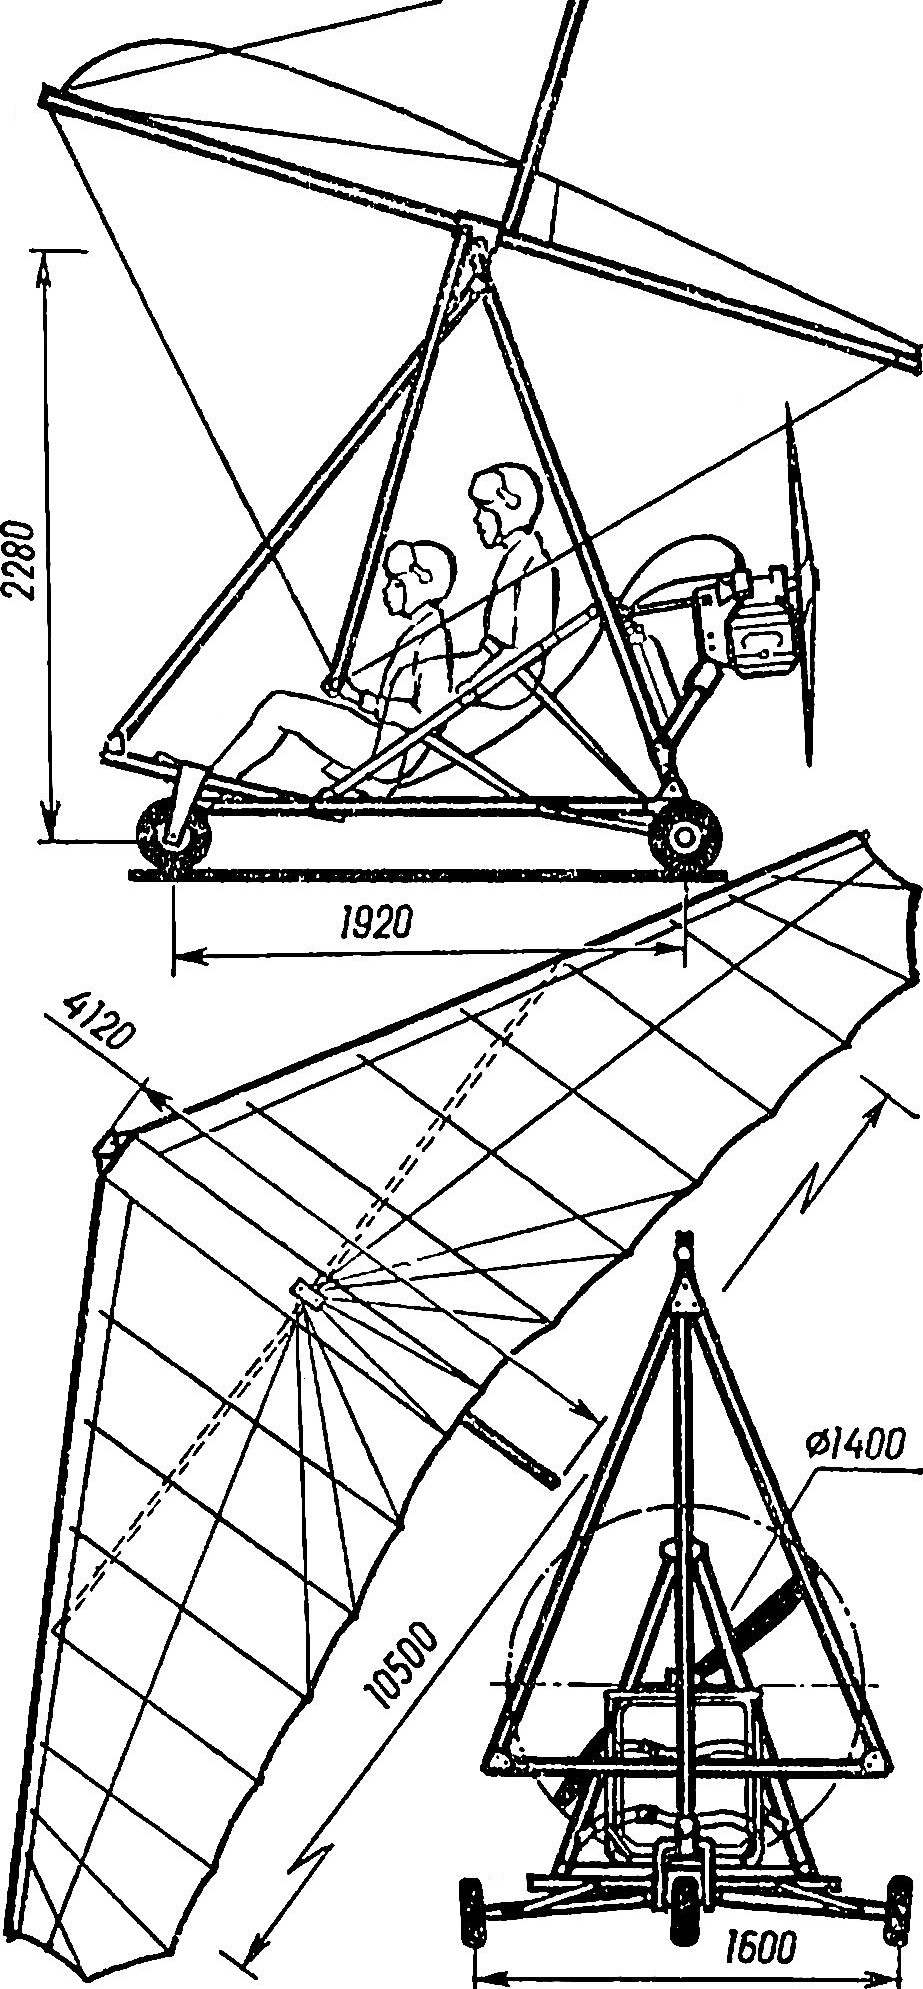 Fig. 4. Double glider MAI-2 designs A. Hare with panel trike.